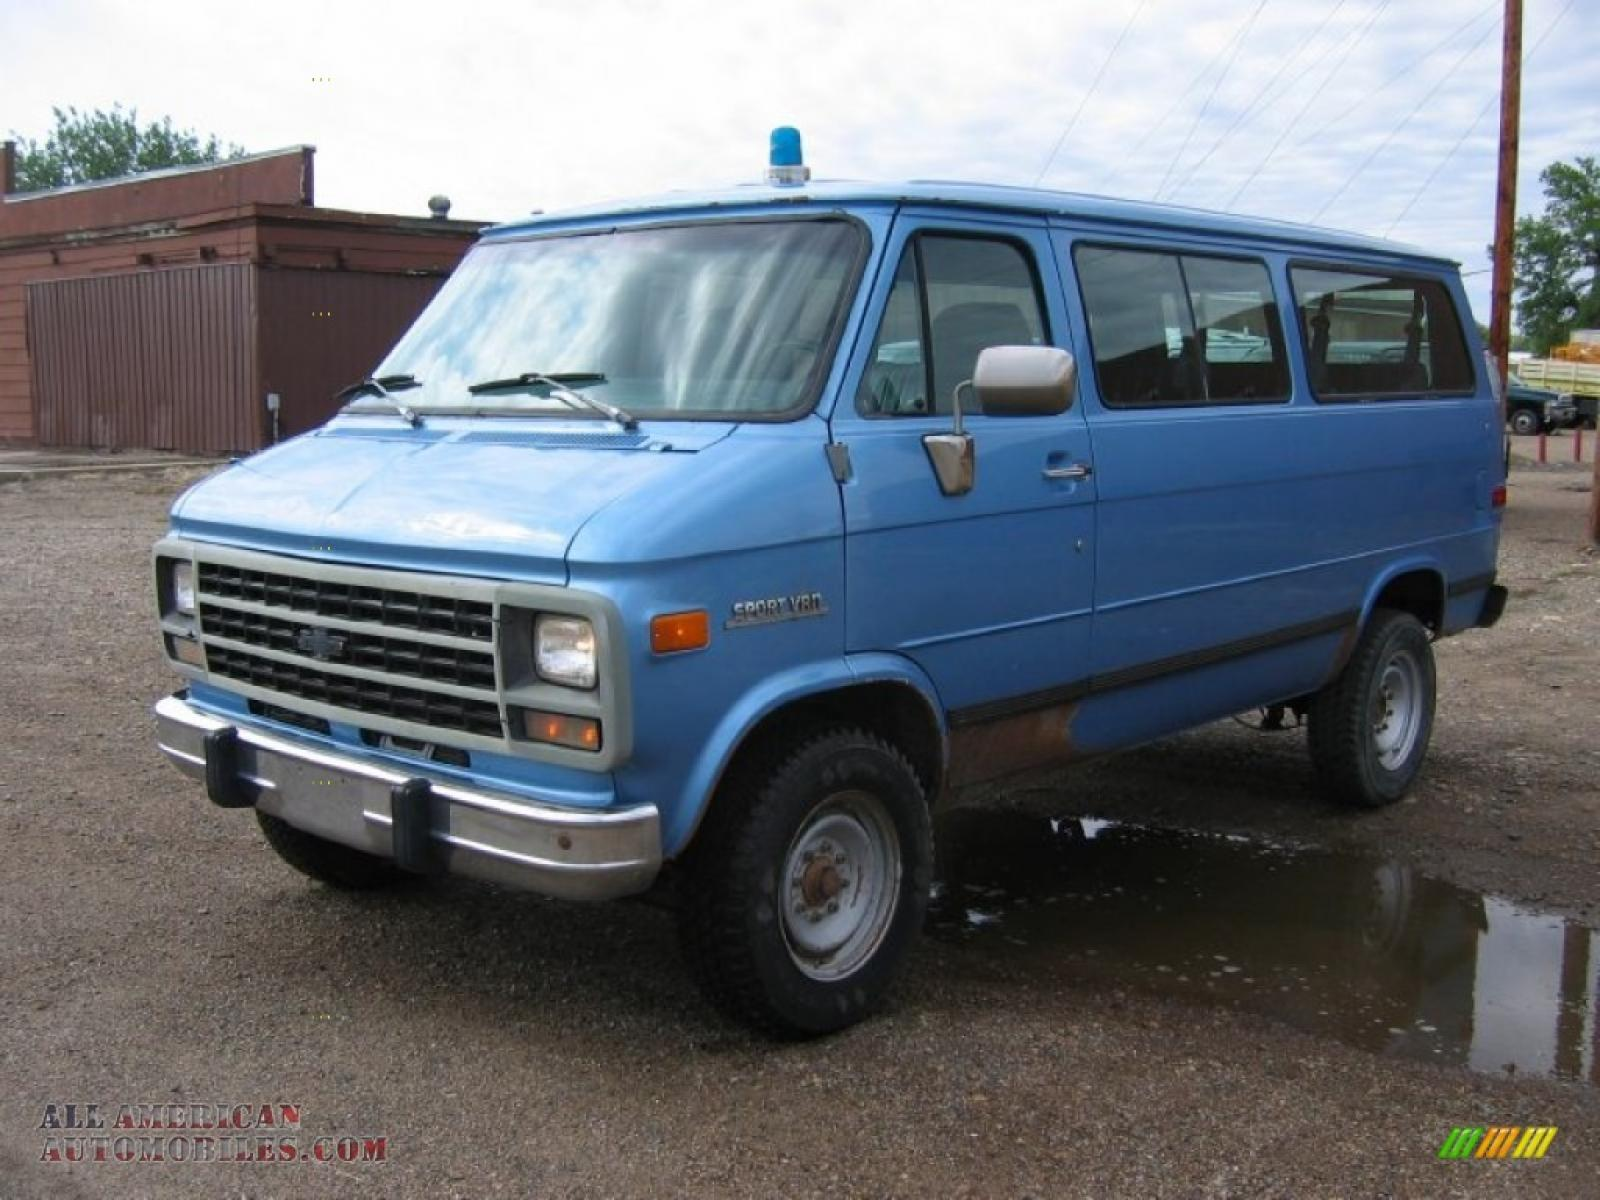 1995 Chevrolet Chevy Van - Information and photos - Zomb Drive